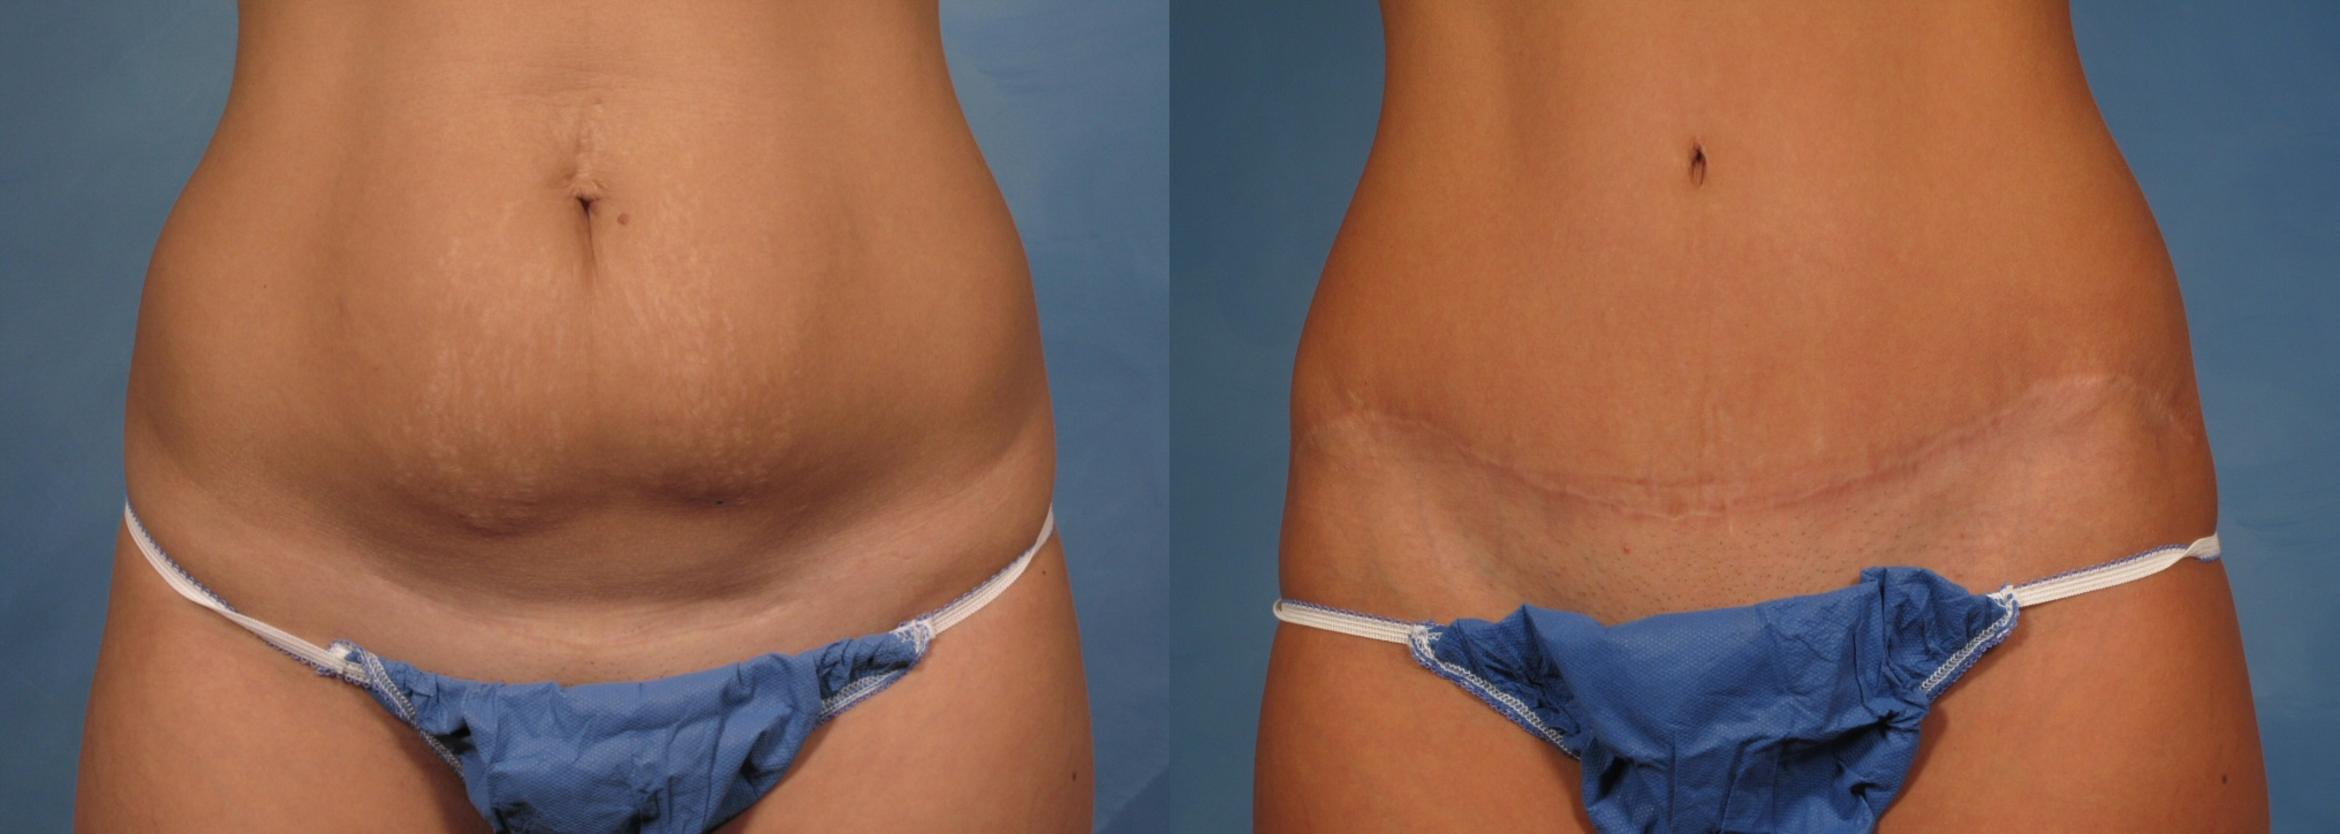 Tummy Tuck Case 170 Before & After View #1 | Naples, FL | Kent V. Hasen, M.D.